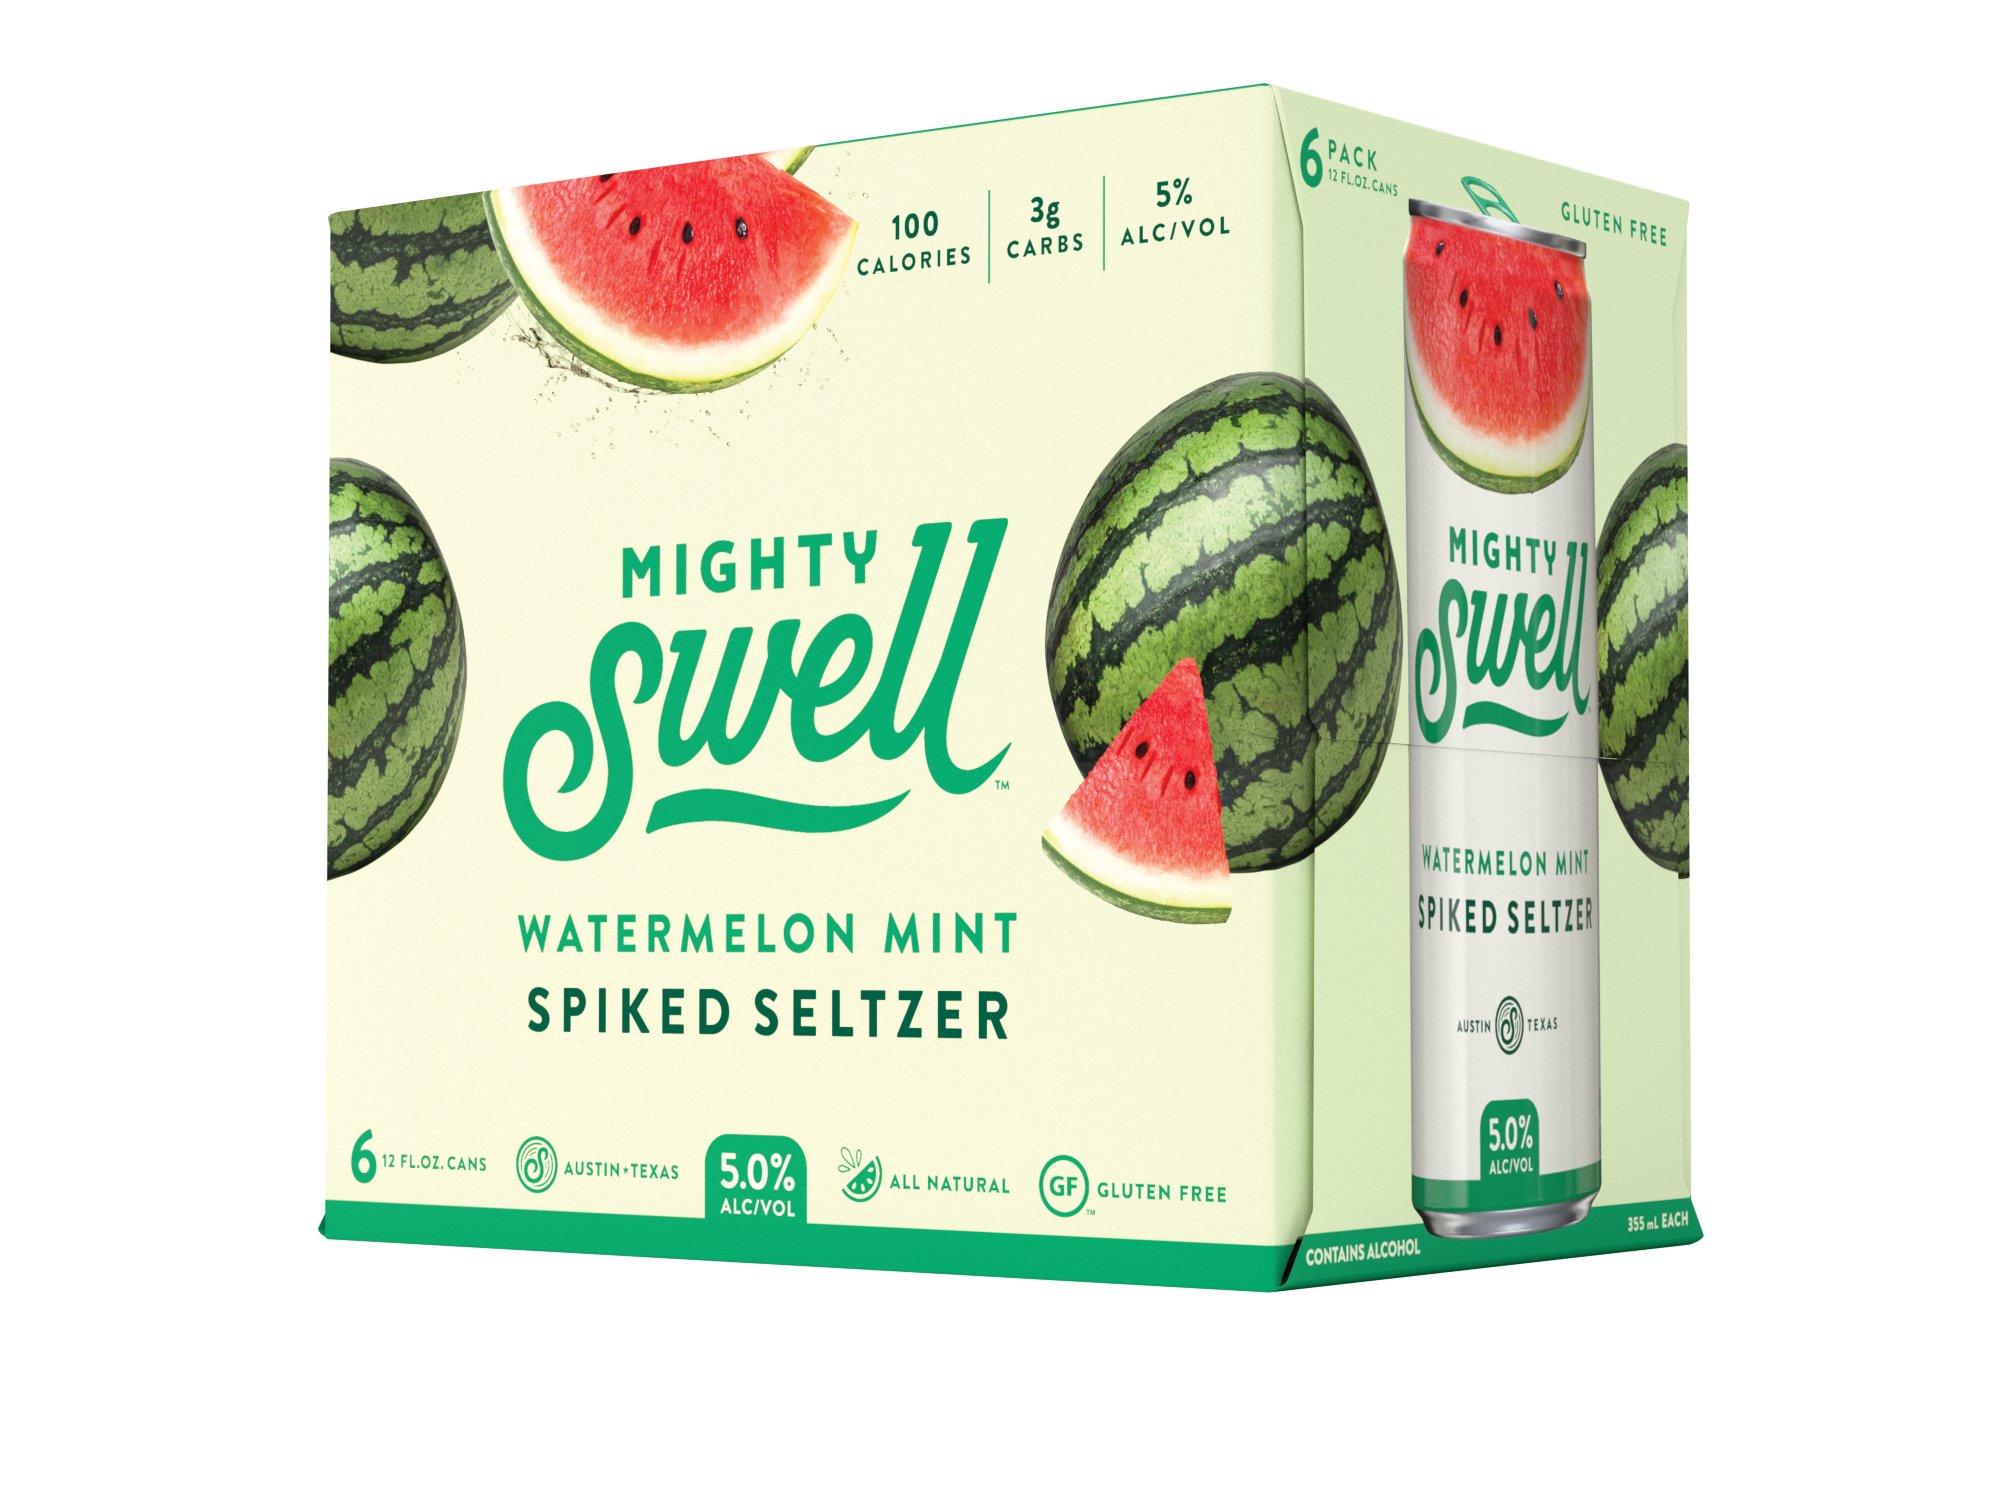 Mighty Swell Watermelon Mint Spiked Seltzer | 6 Pack